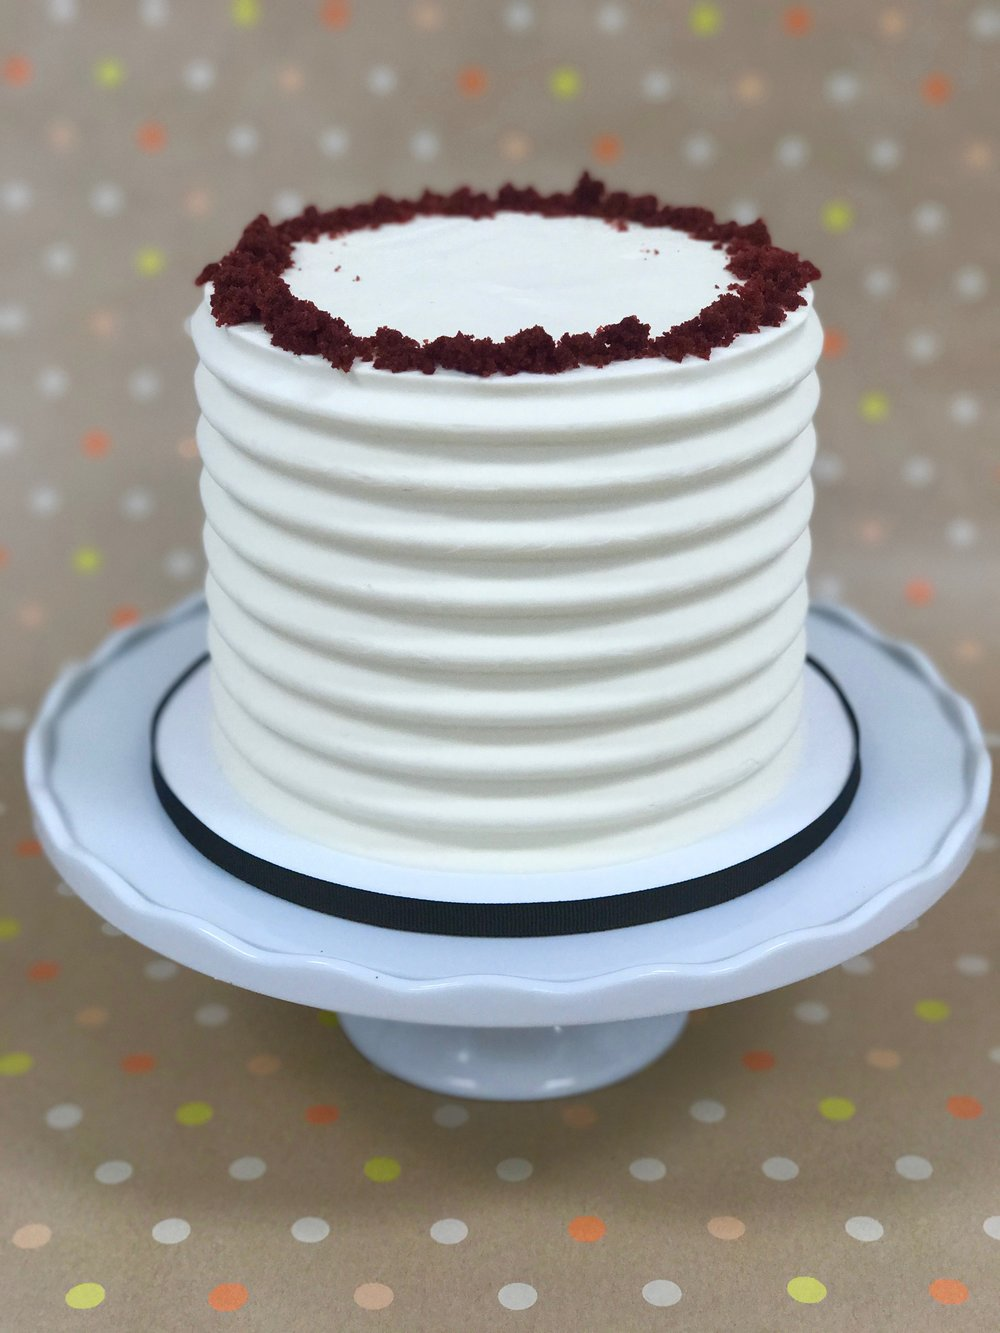 Red Velvet - Cake: Red VelvetFilling: Vanilla Cream CheeseFrosting: Vanilla Swiss Meringue Buttercream and Red Velvet Cake Crumbs